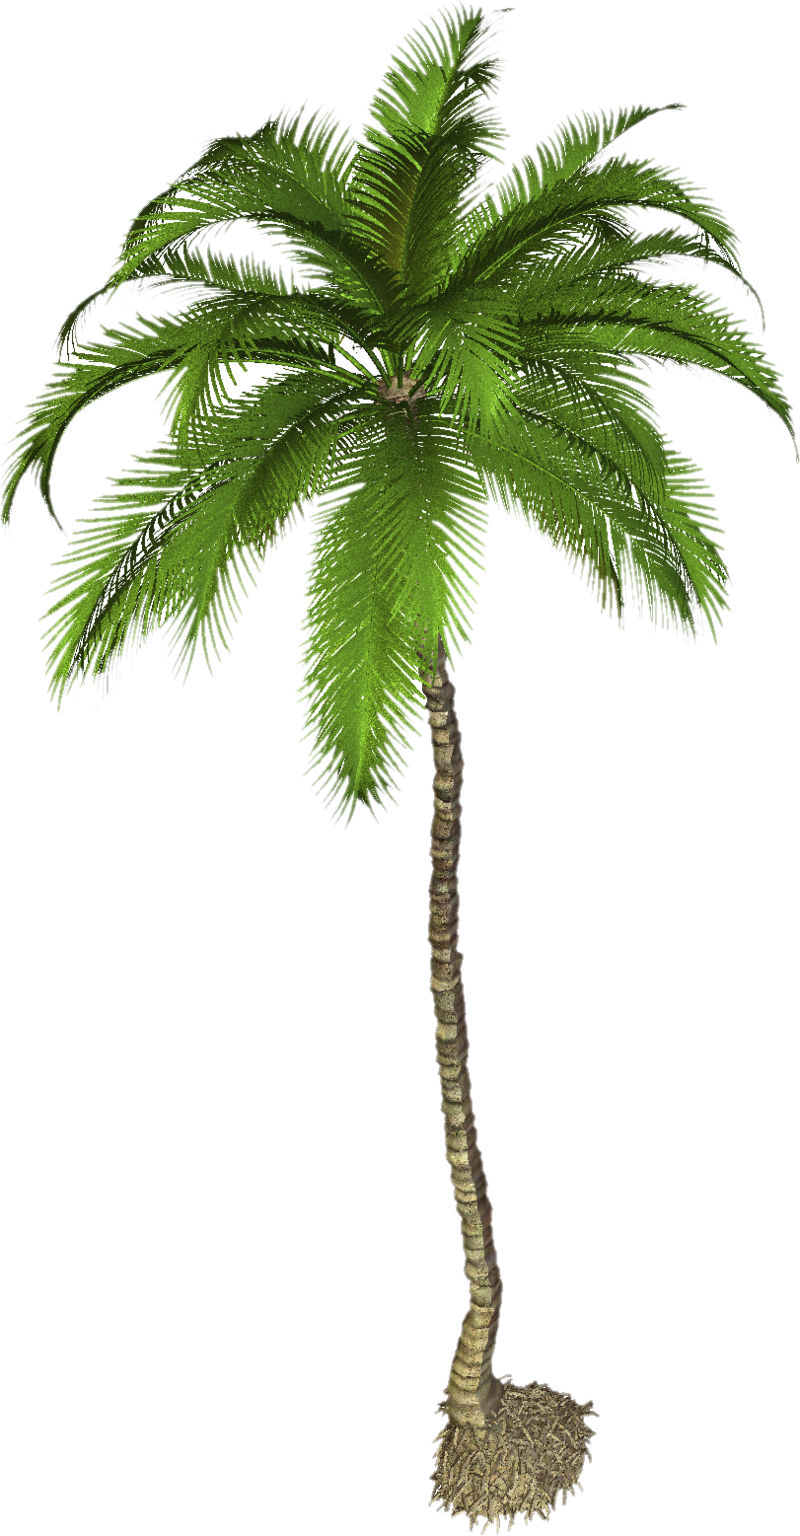 Coconut tree png. Download free photo dlpng